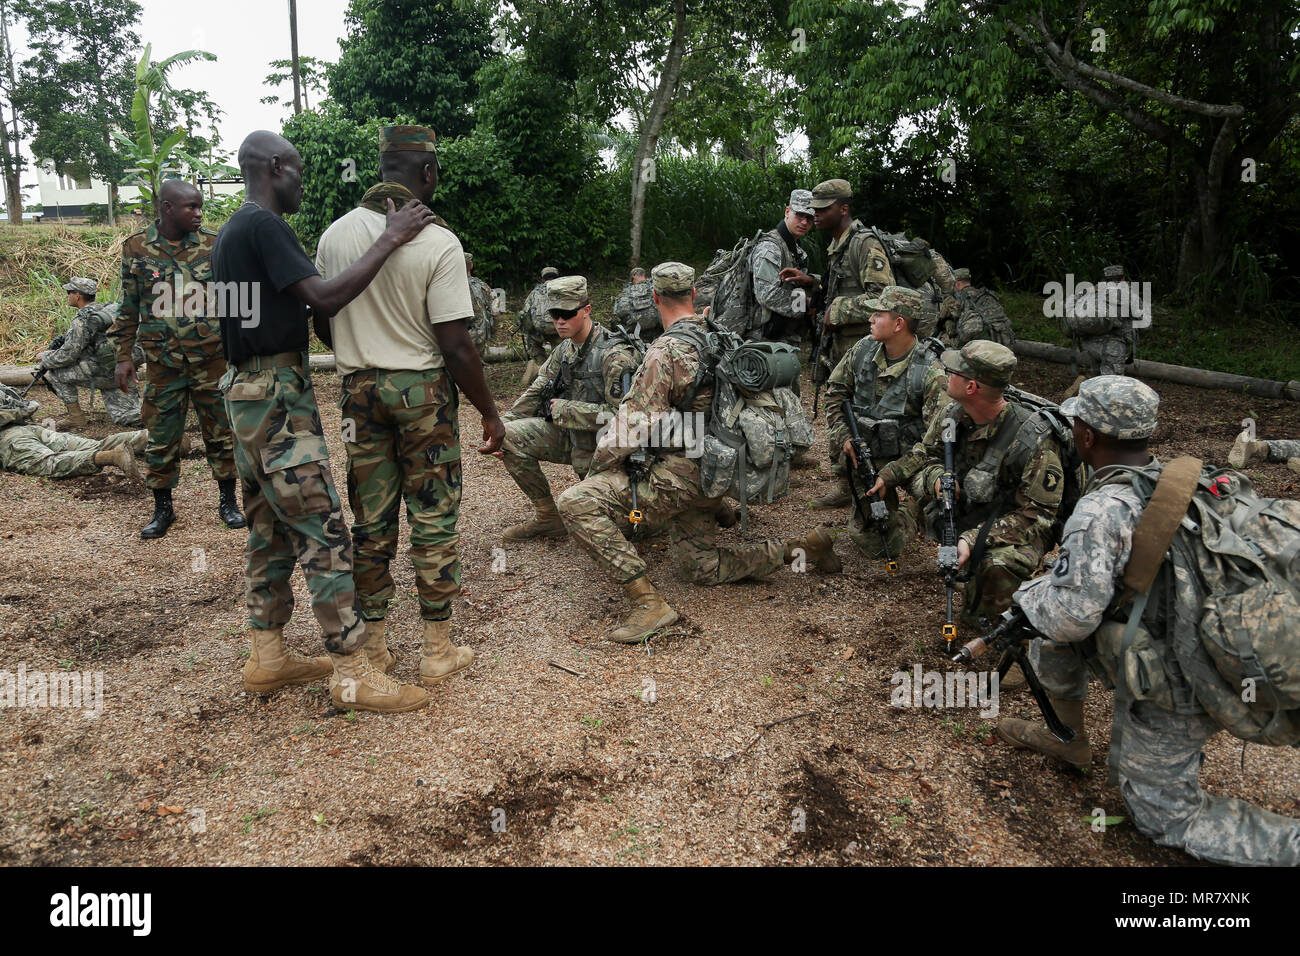 U.S. Soldiers assigned to the 1st Battalion, 506th Infantry Regiment, 1st Brigade Combat Team, 101st Airborne Infantry Division receive instructions from the Ghana Armed Forces during United Accord 2017 at the Jungle Warfare School on Achiase military base in Akim Oda, Ghana on May 20, 2017. The Jungle Warfare School is a series of situational training exercises designed to train participants in counter-insurgency and internal security operations. (U.S. Army photo by Pfc. Joseph Friend) - Stock Image